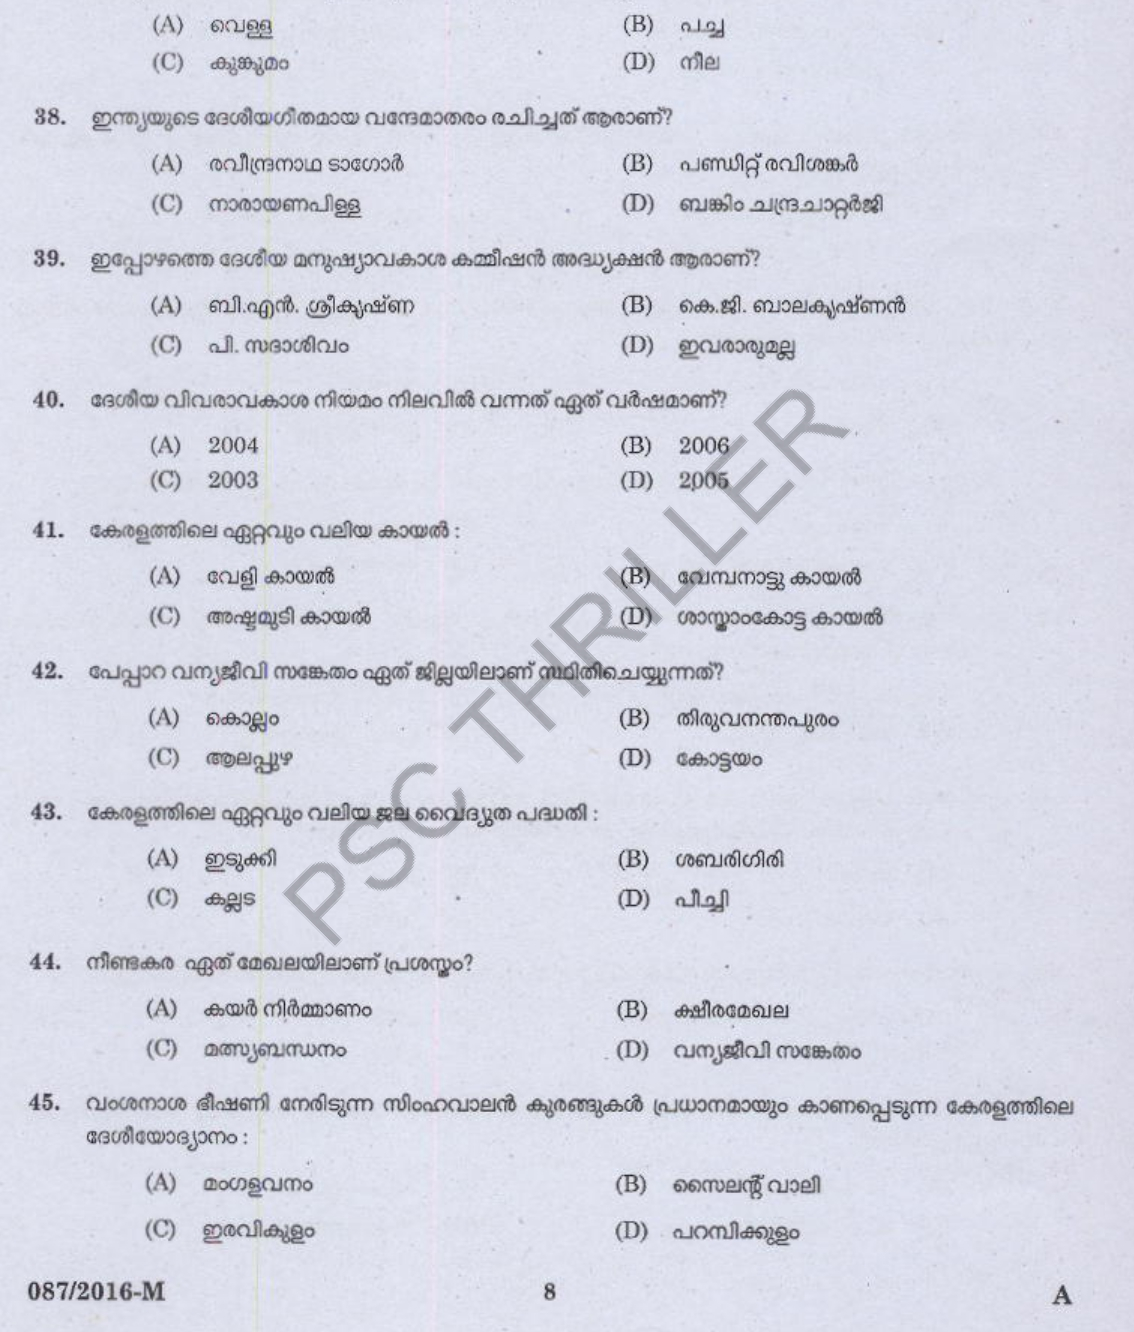 Village Extension Officer (VEO) -Question Paper 87/2016 - Kerala PSC